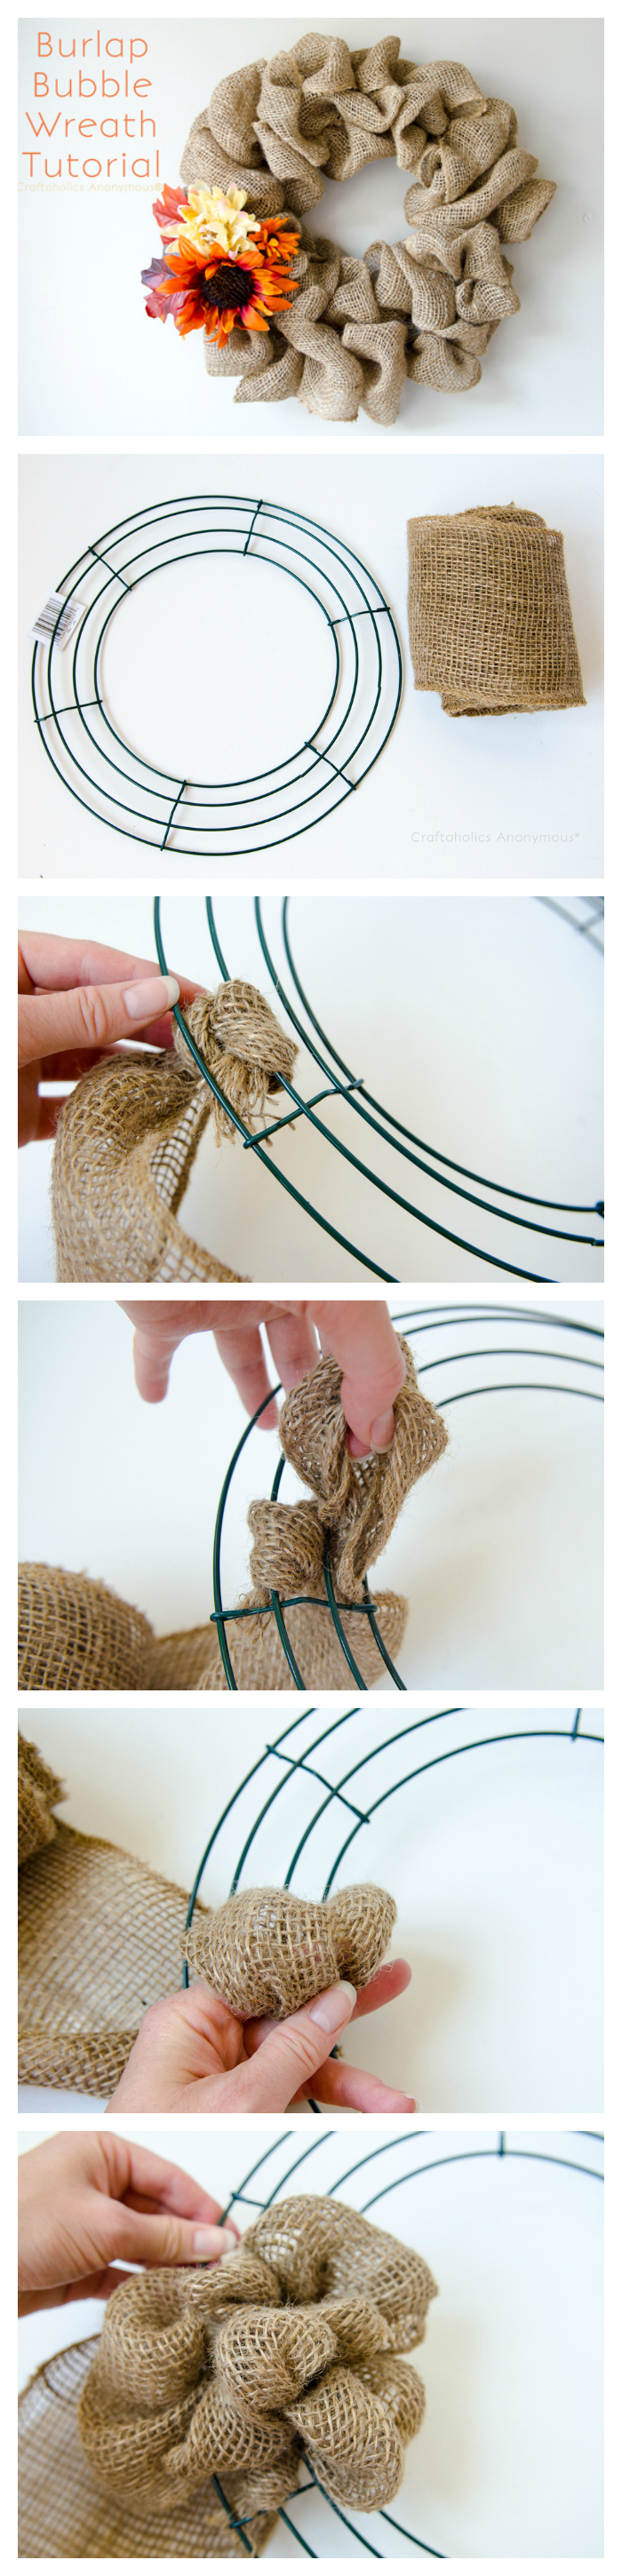 burlap bubble wreath tutorial